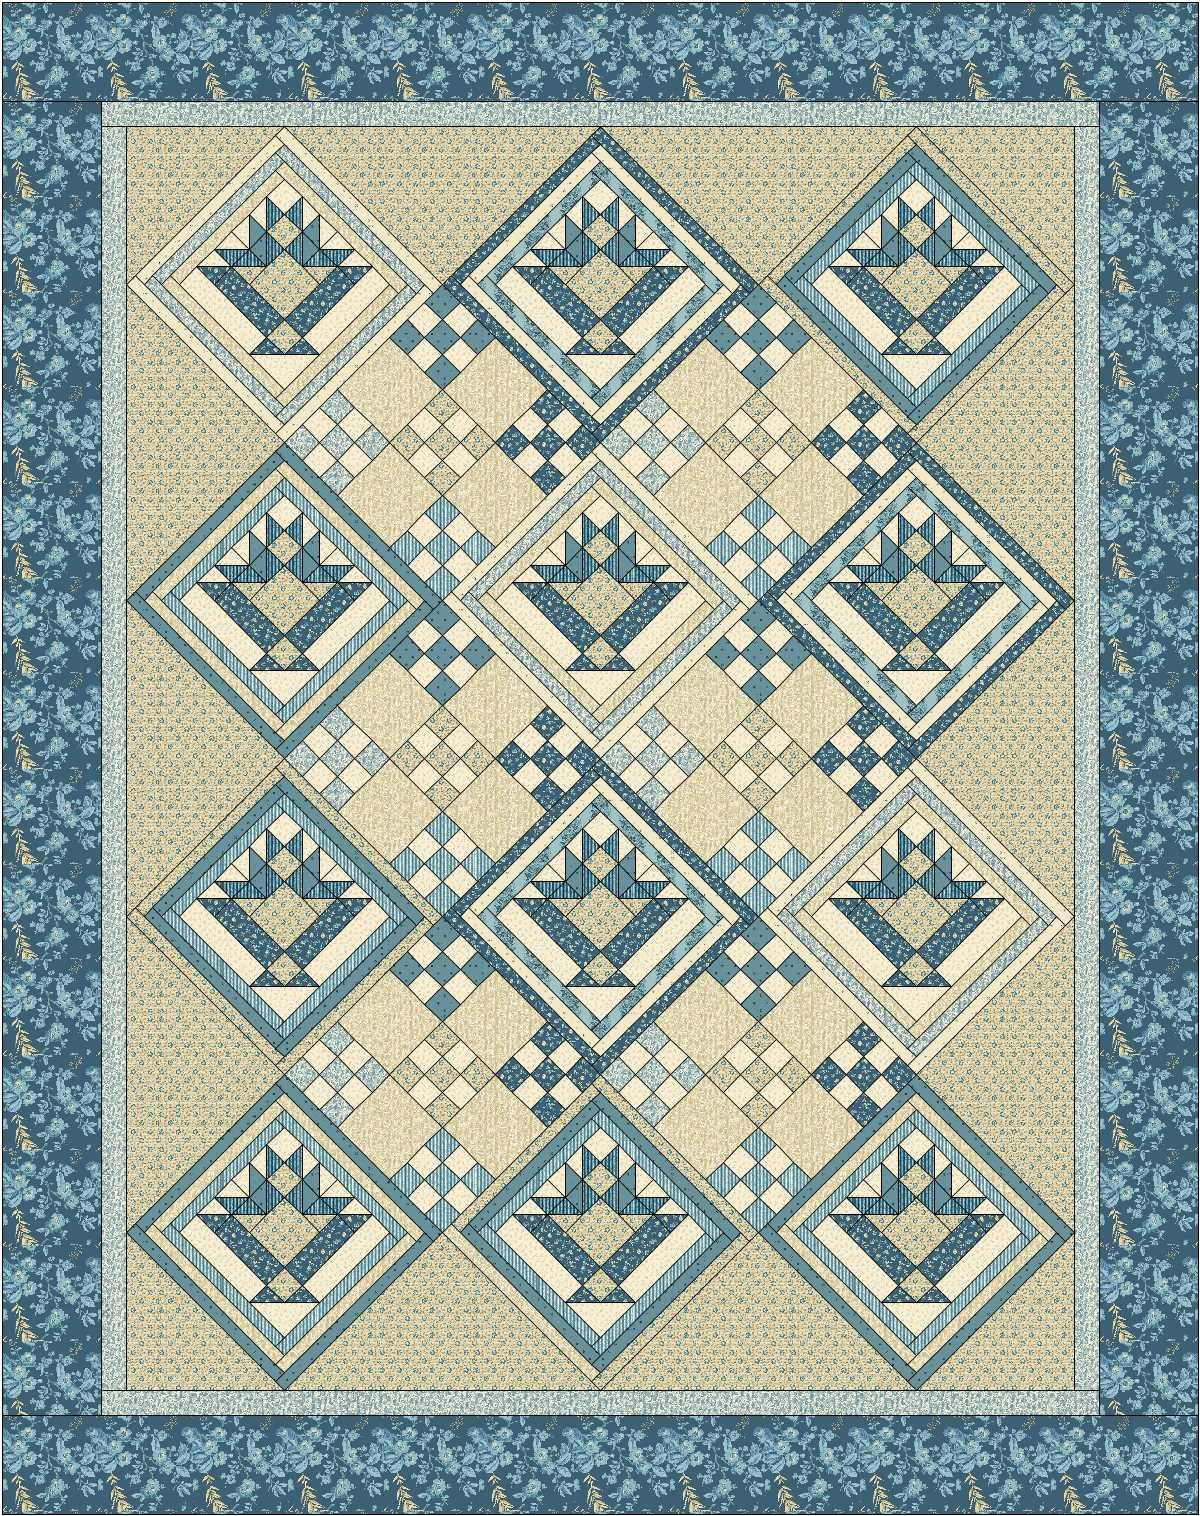 Blue By You Festival Quilt Setting Kit